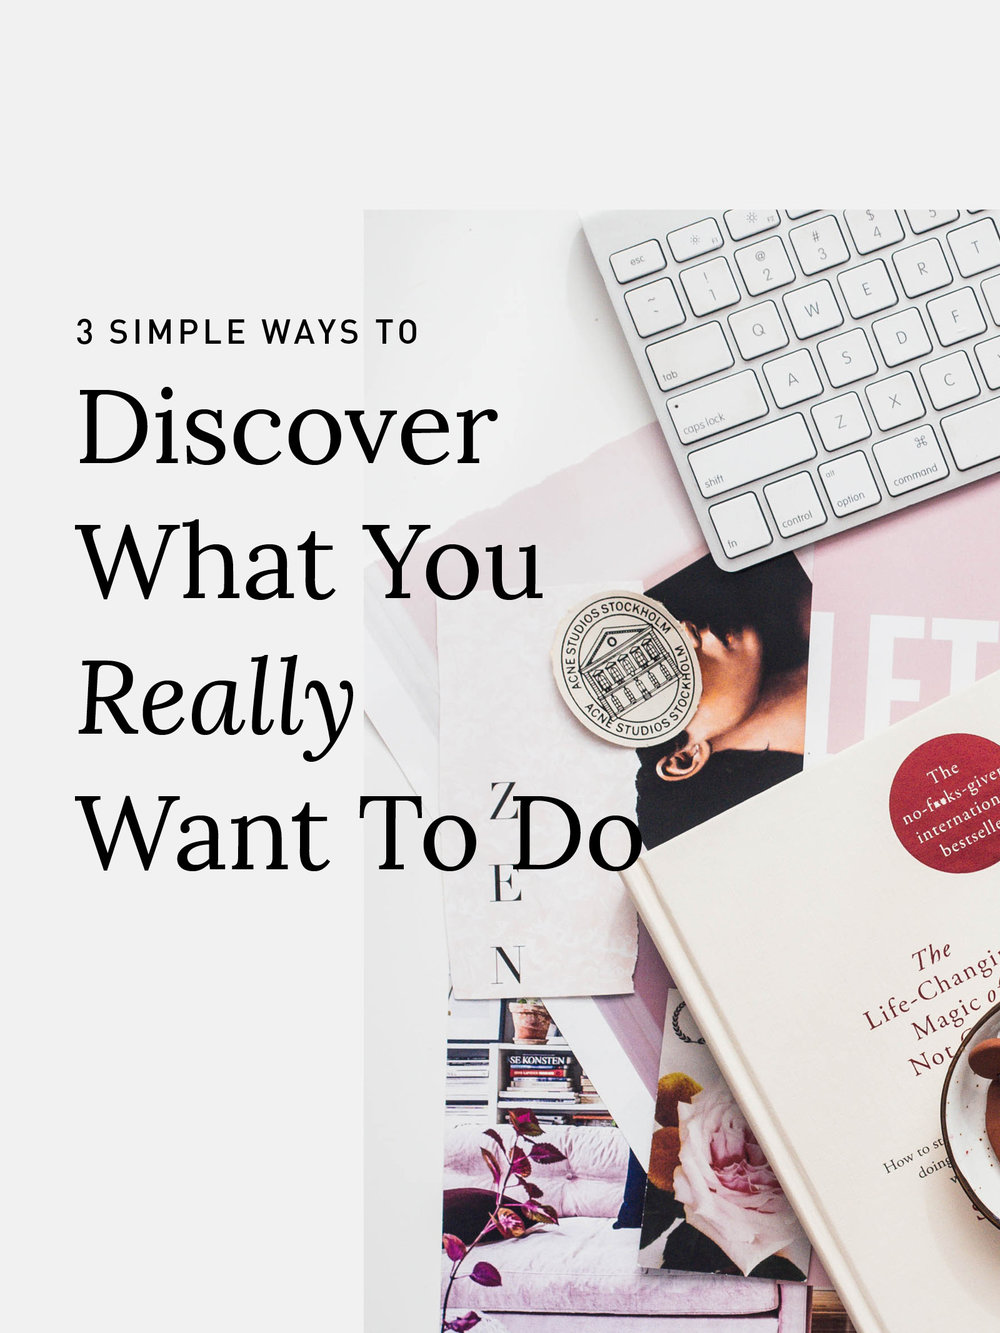 Discover what you really want to do